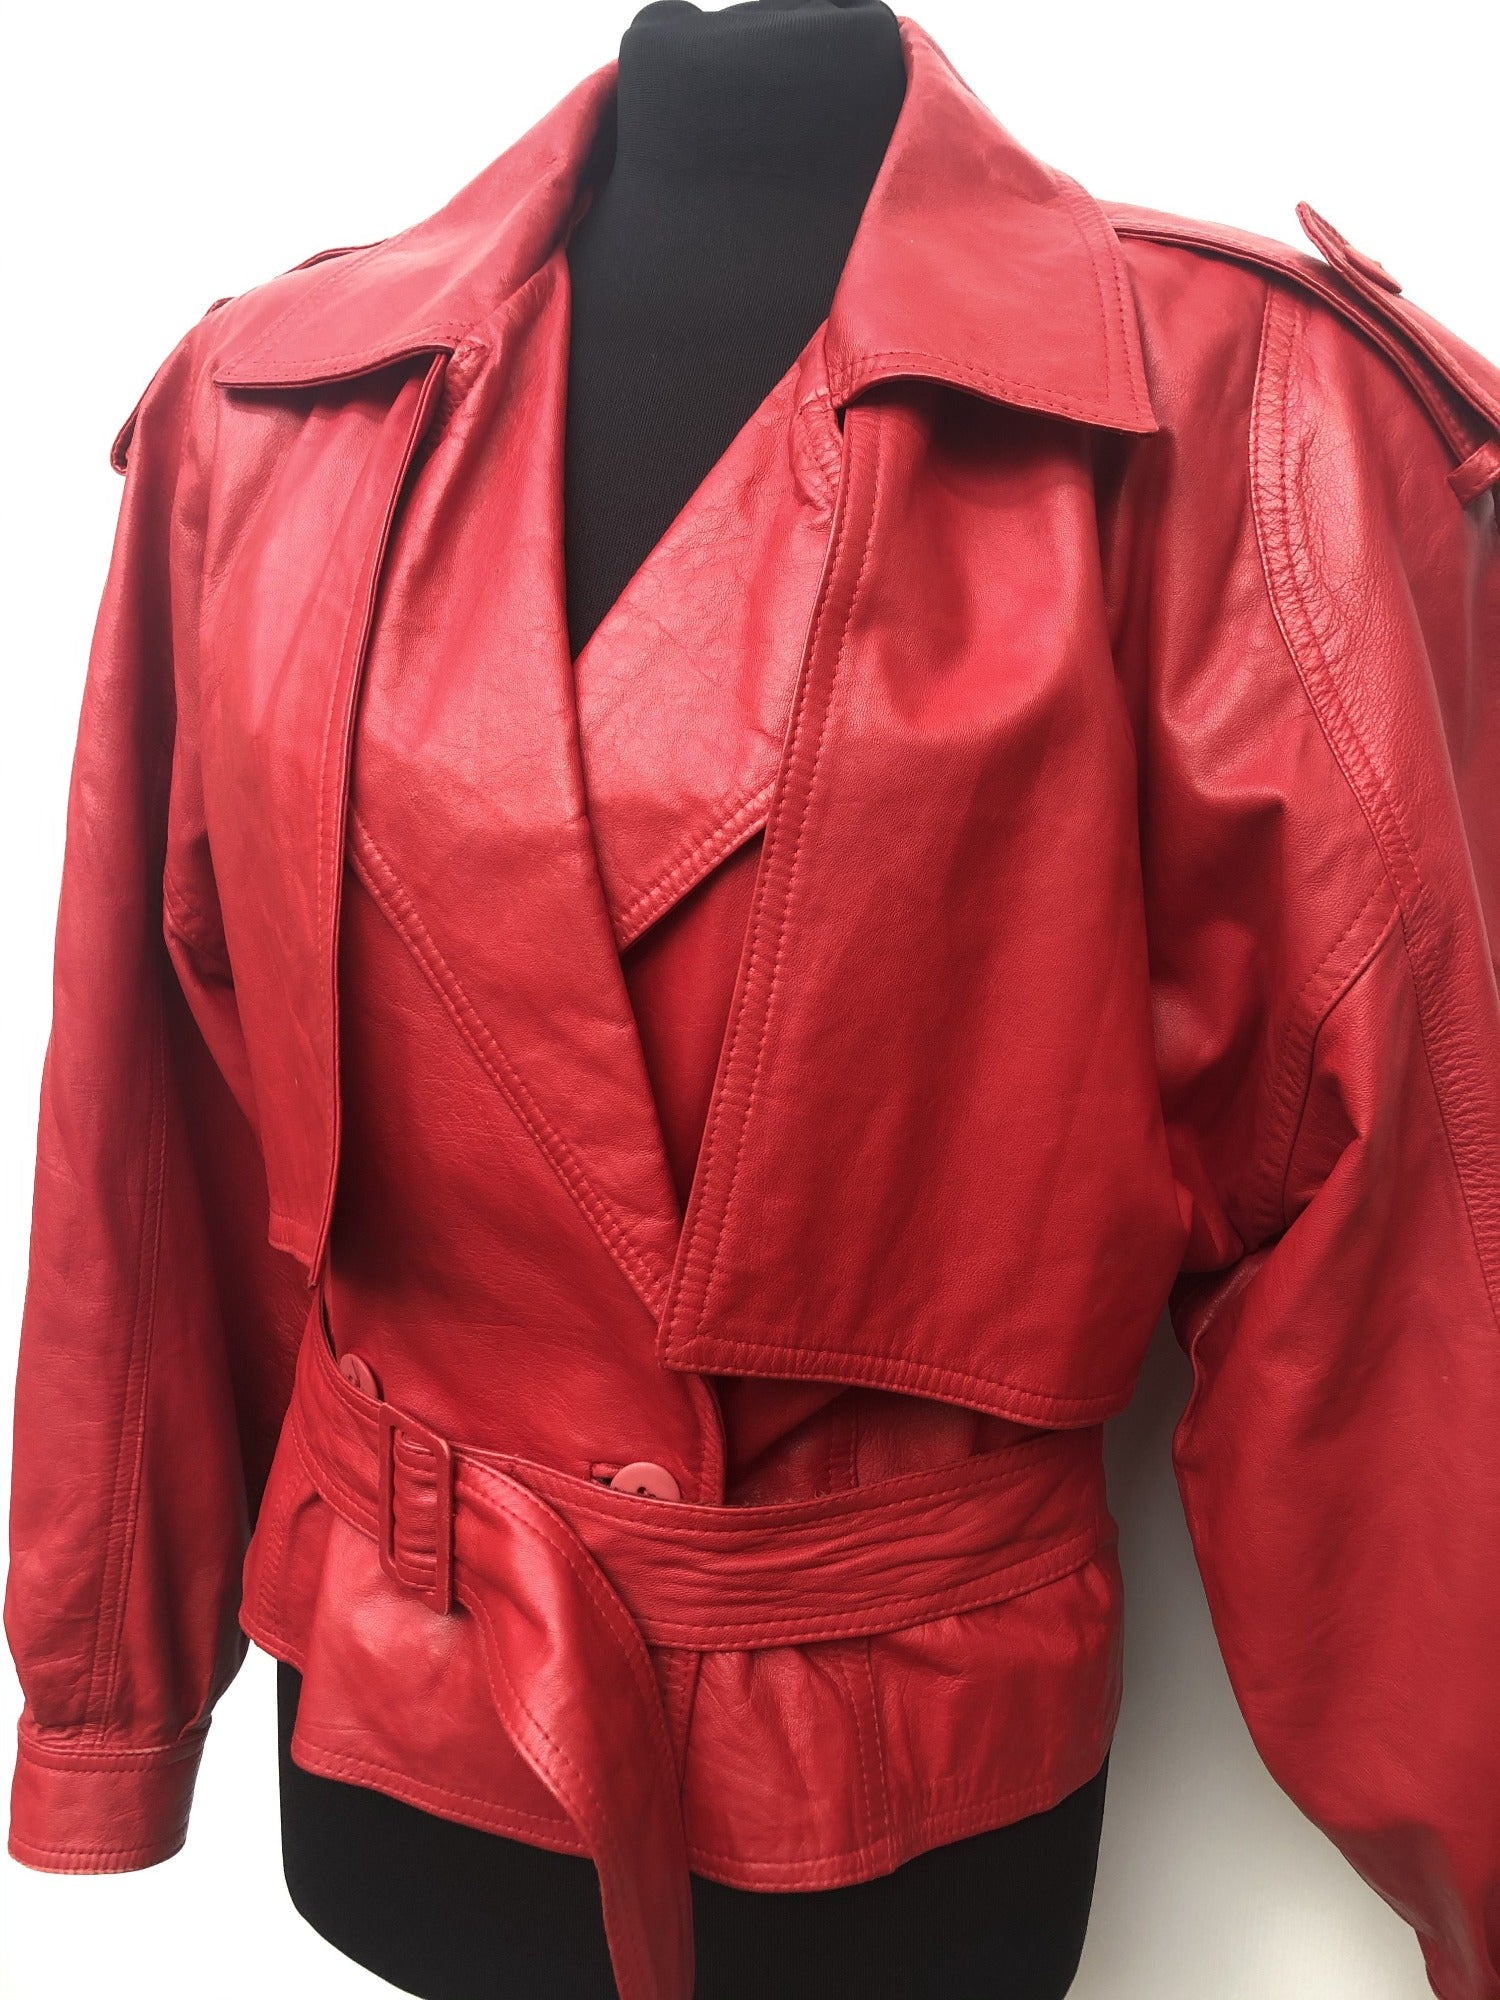 womens  vintage  urban village  shoulder pads  Red  puff sleeve  Neto  leather jacket  Leather  jacket  clothing  80s  1980s  10